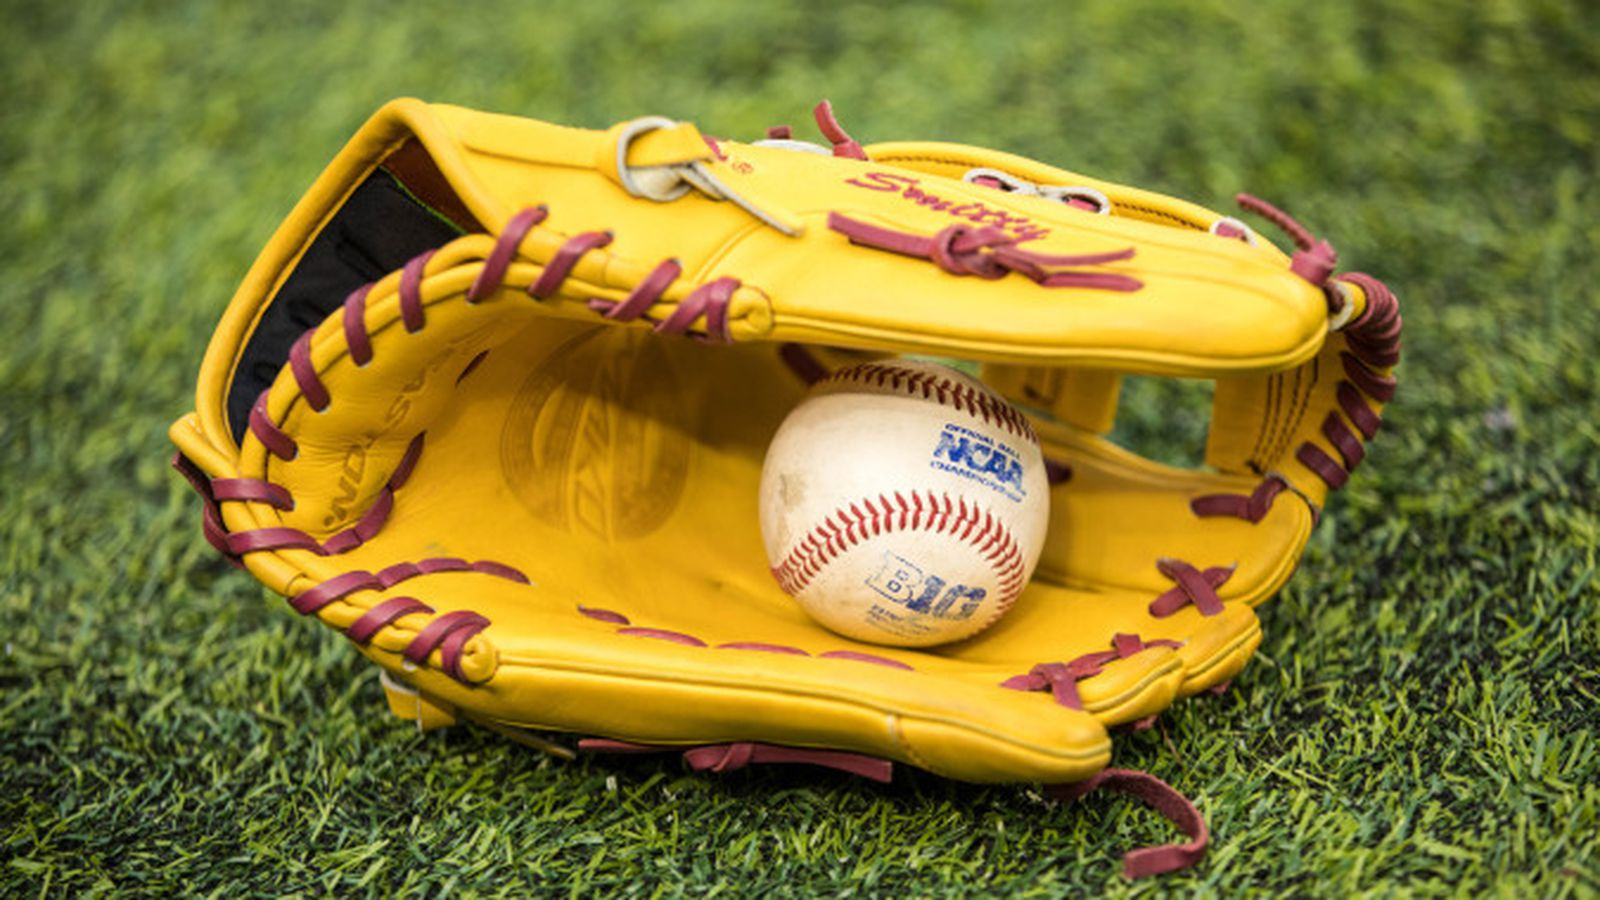 Gopher_baseball_glove.0